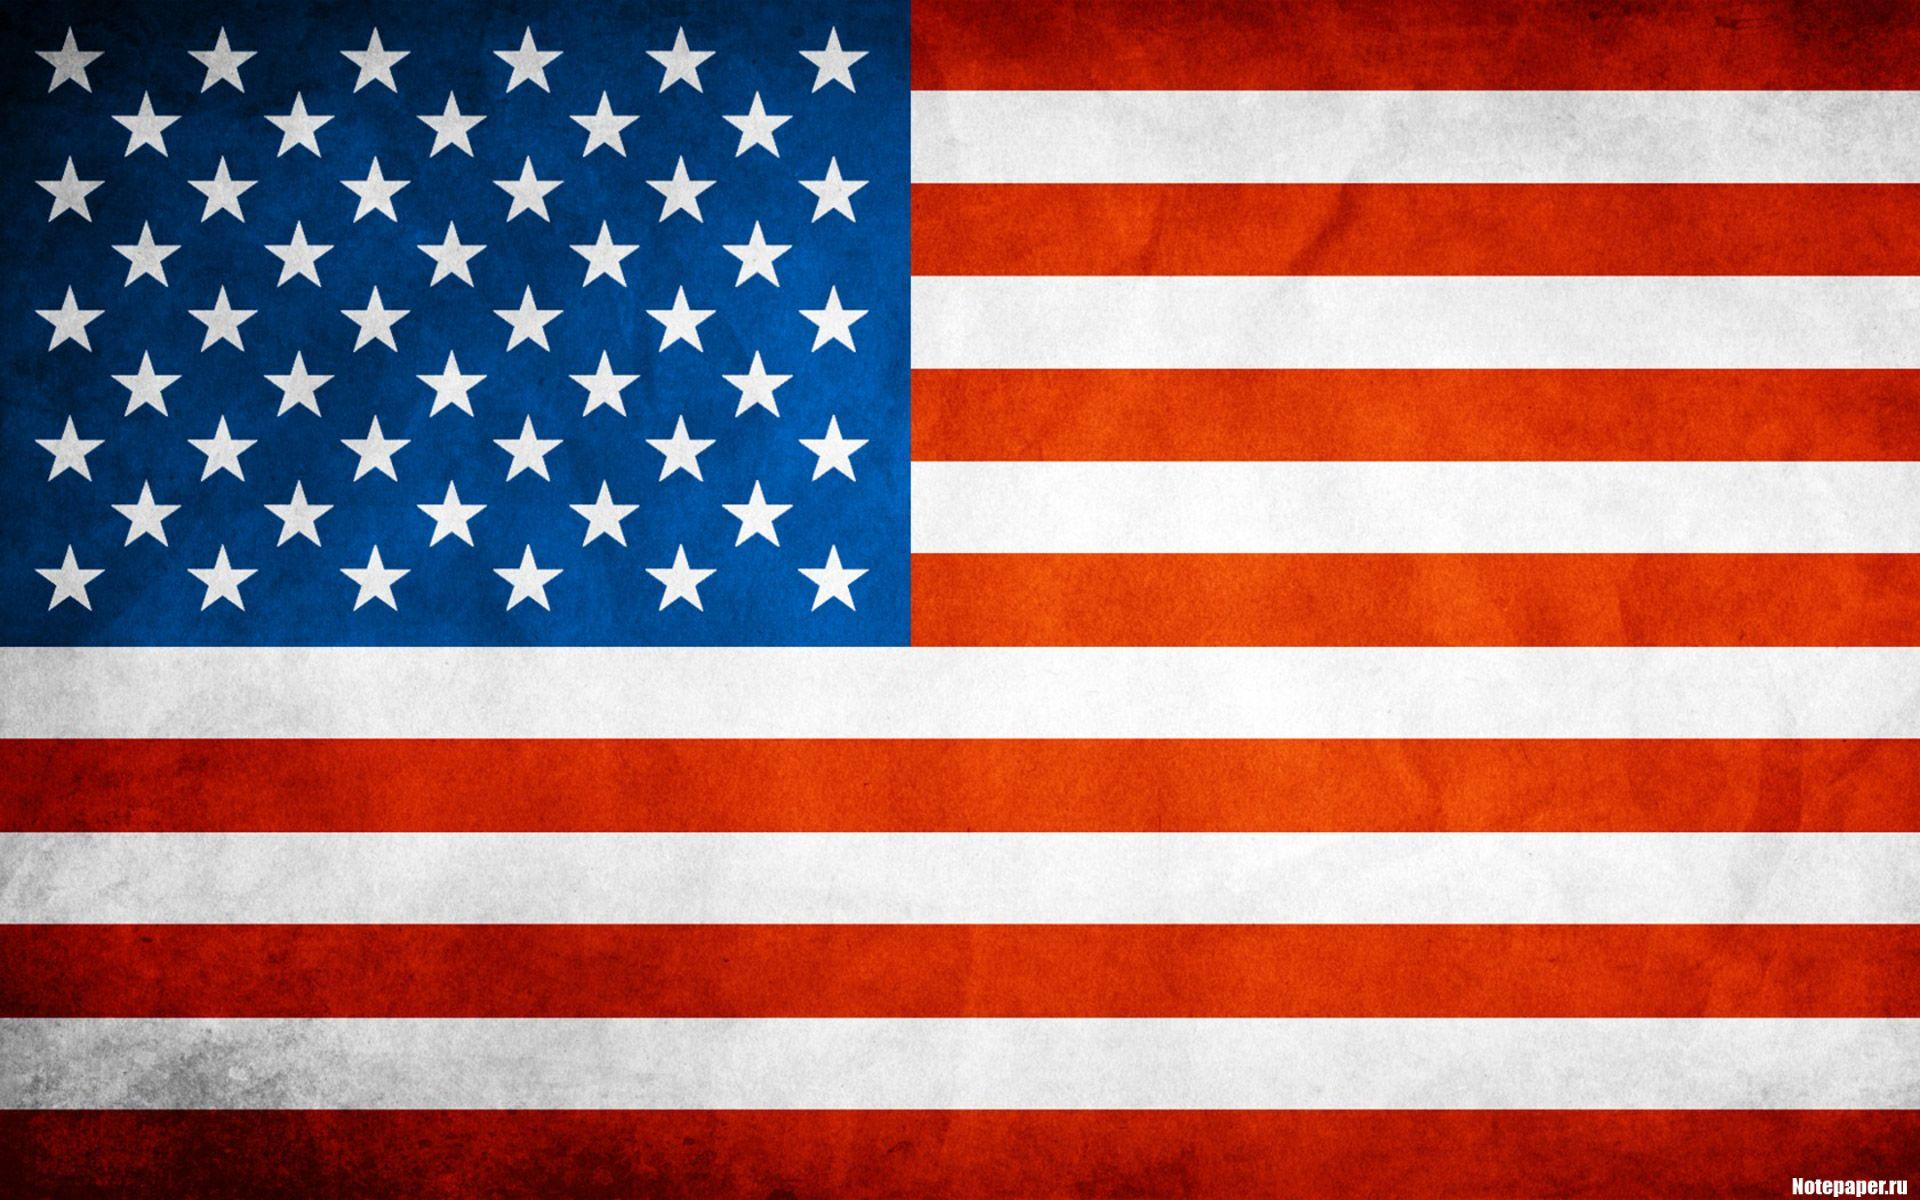 Hd wallpaper usa - American Flag Wallpapers Full Hd Wallpaper Search